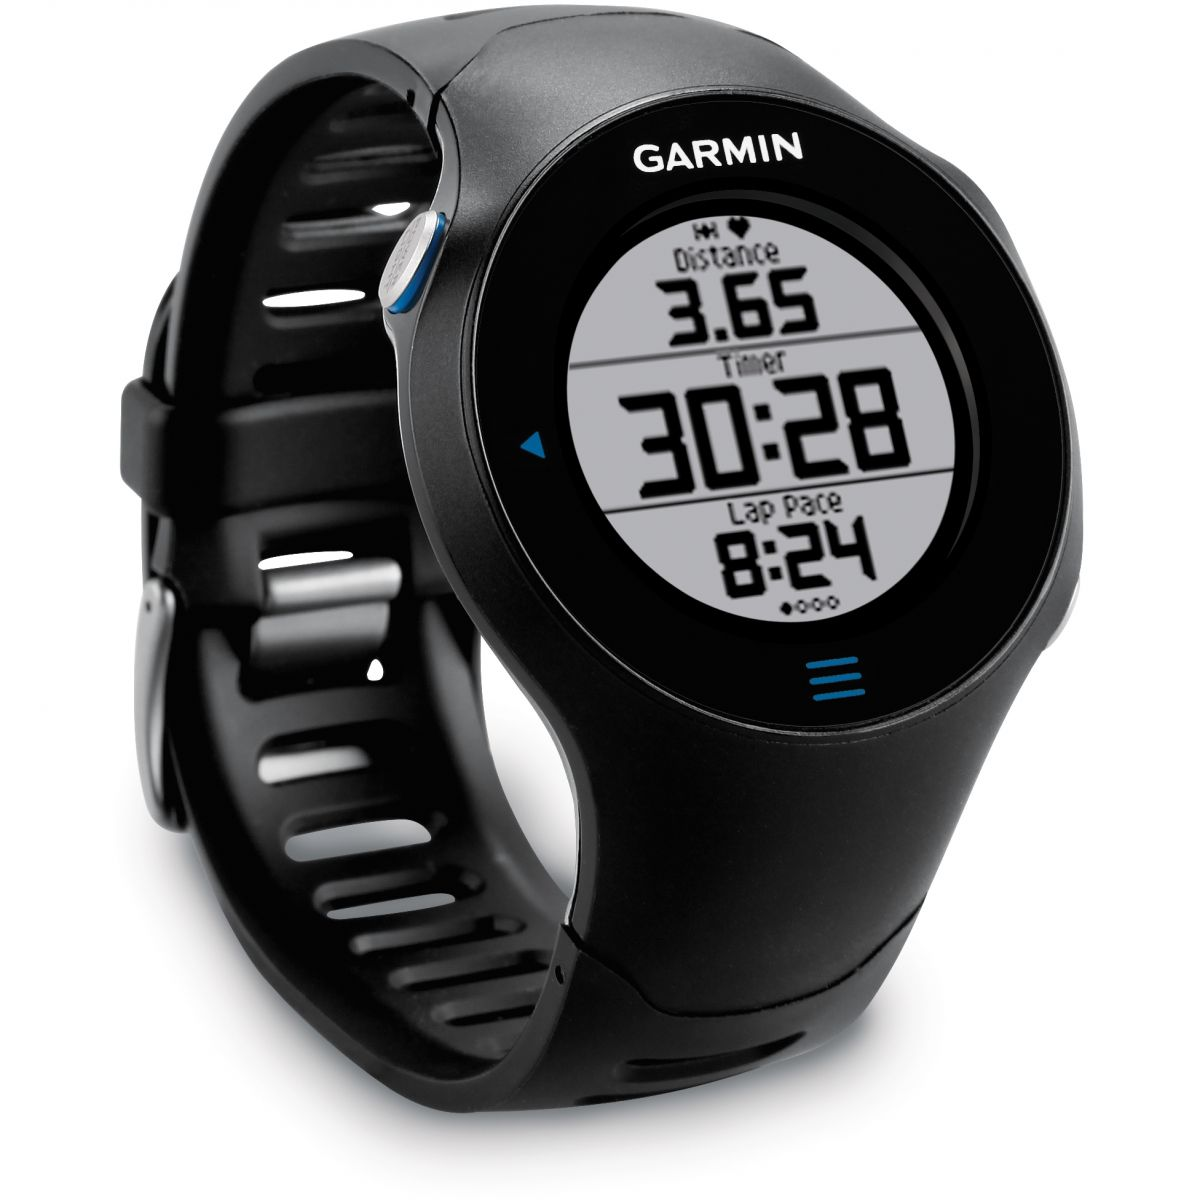 gents garmin forerunner 610 touch screen gps heart rate monitor rh watchshop com Garmin 610 vs 410 Garmin 610 Charger